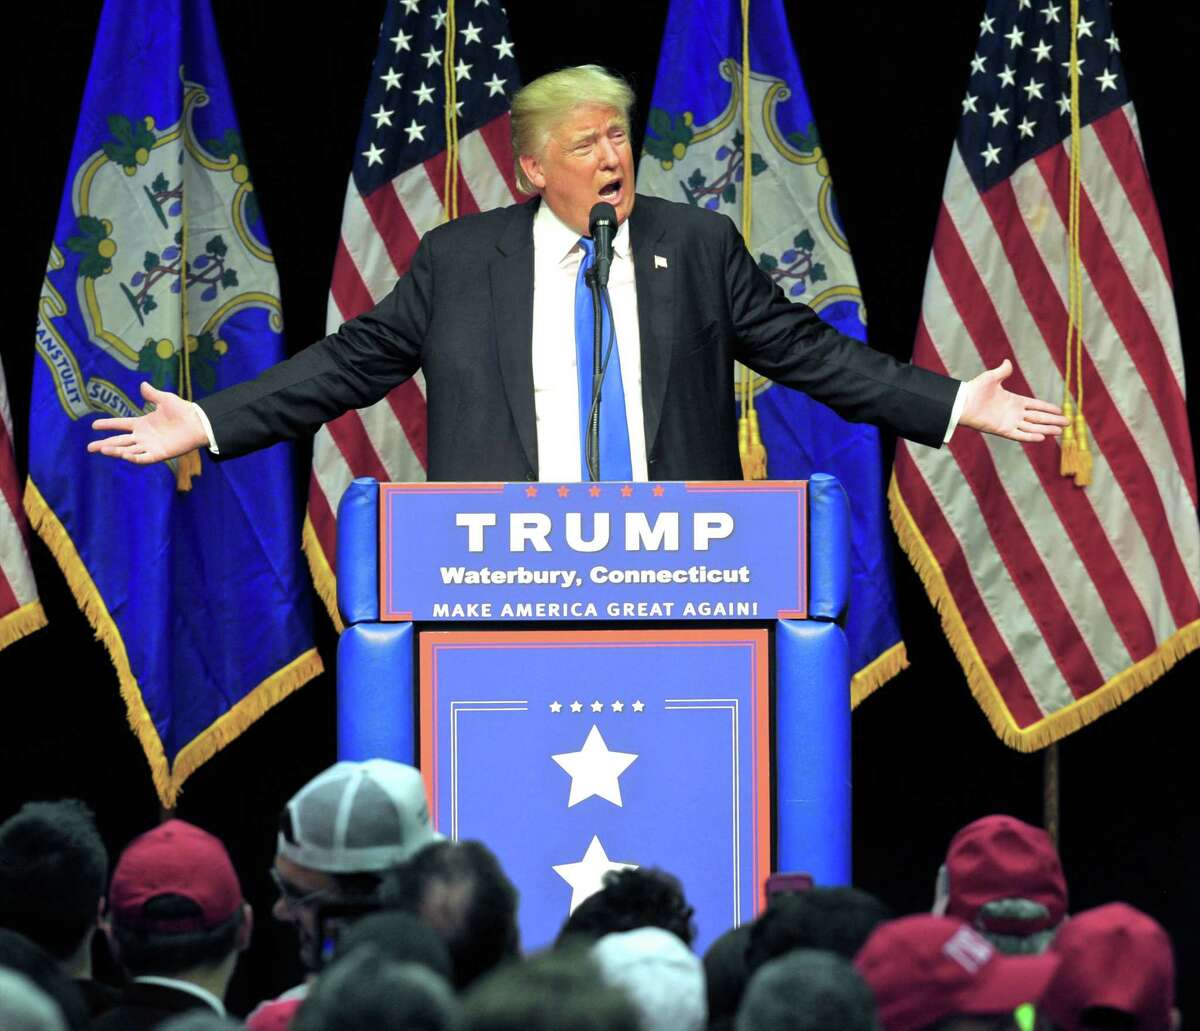 Donald Trump speaks during a campaign rally at Crosby High School, in Waterbury, Conn, on Saturday morning, April 23, 2016.